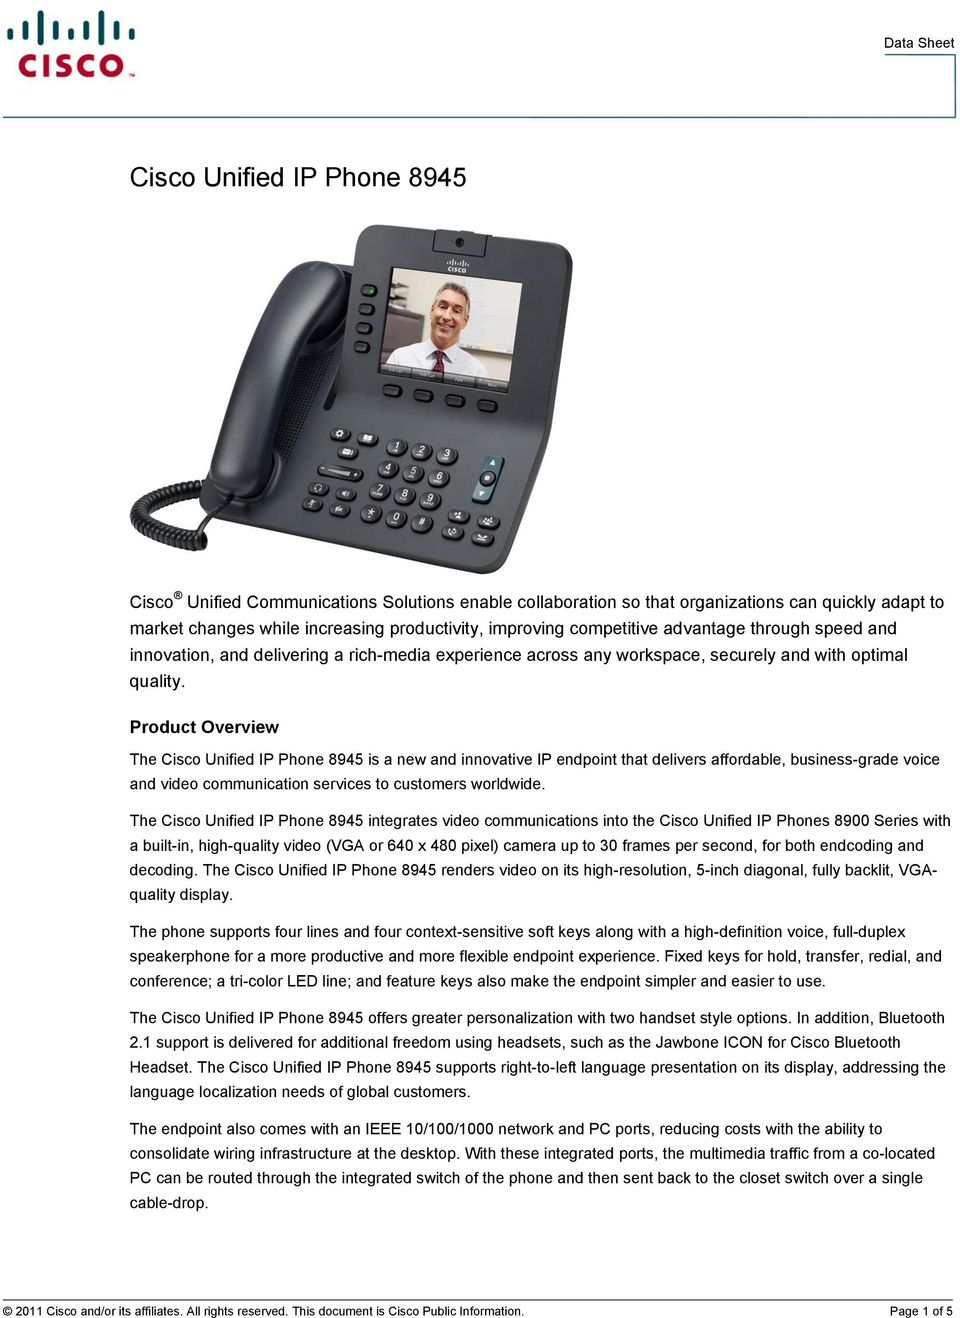 Product Overview The Cisco Unified IP Phone 8945 is a new and innovative IP endpoint that delivers affordable, business-grade voice and video communication services to customers worldwide.